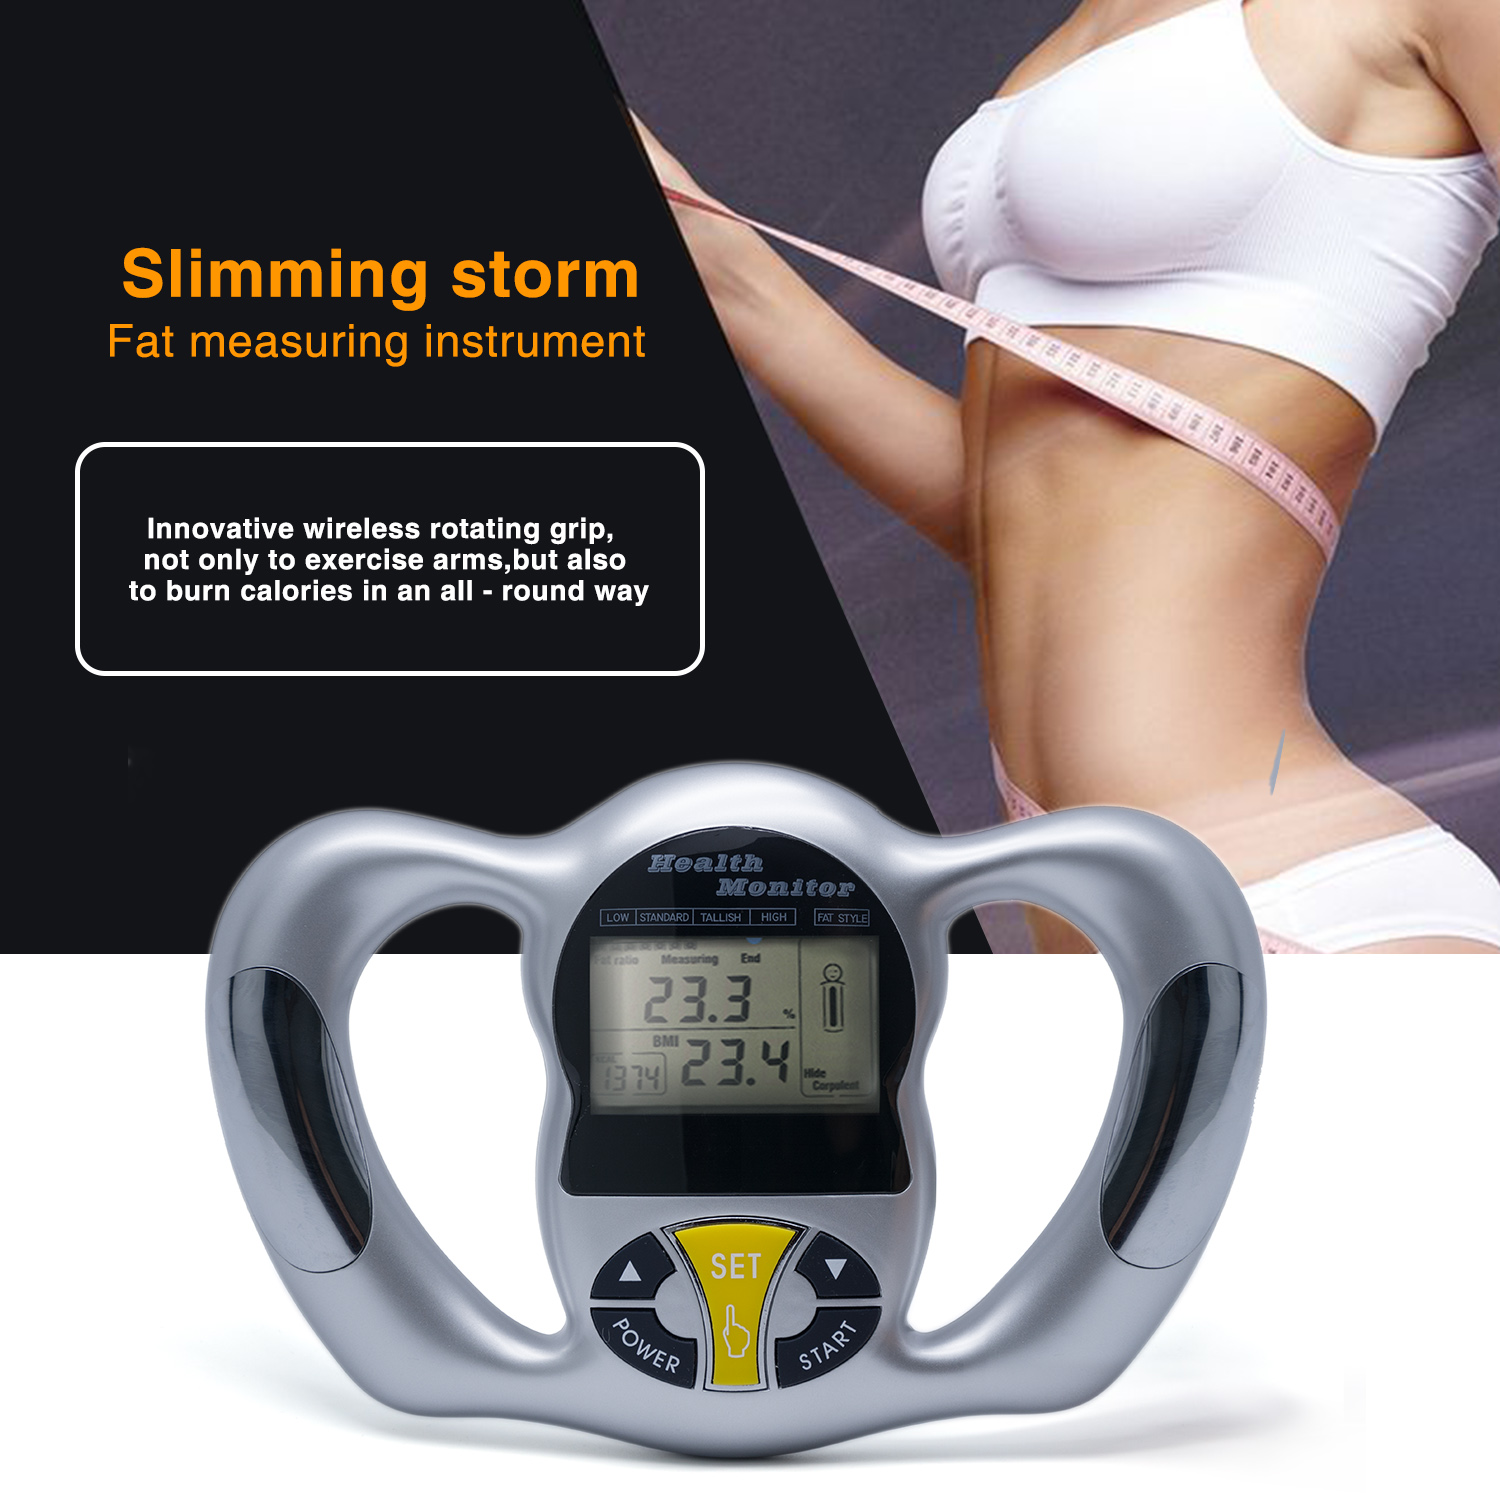 Body Health Monitor Digital LCD Fat Analyzer BMI Meter Weight Loss Tester Calorie Calculator Measurement Tools C1418